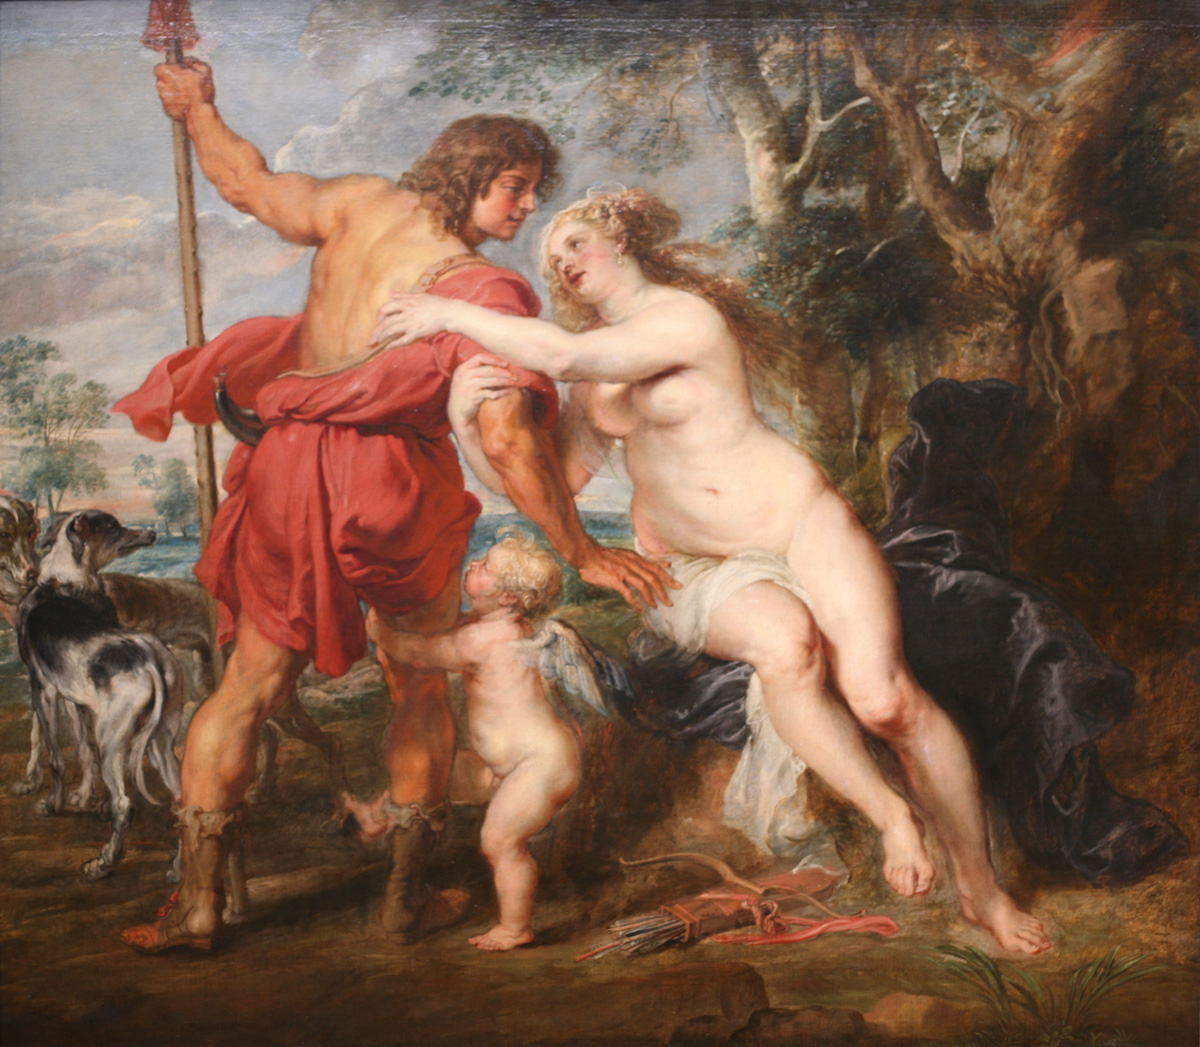 ''Venus and Adonis'' by Peter Paul Rubens